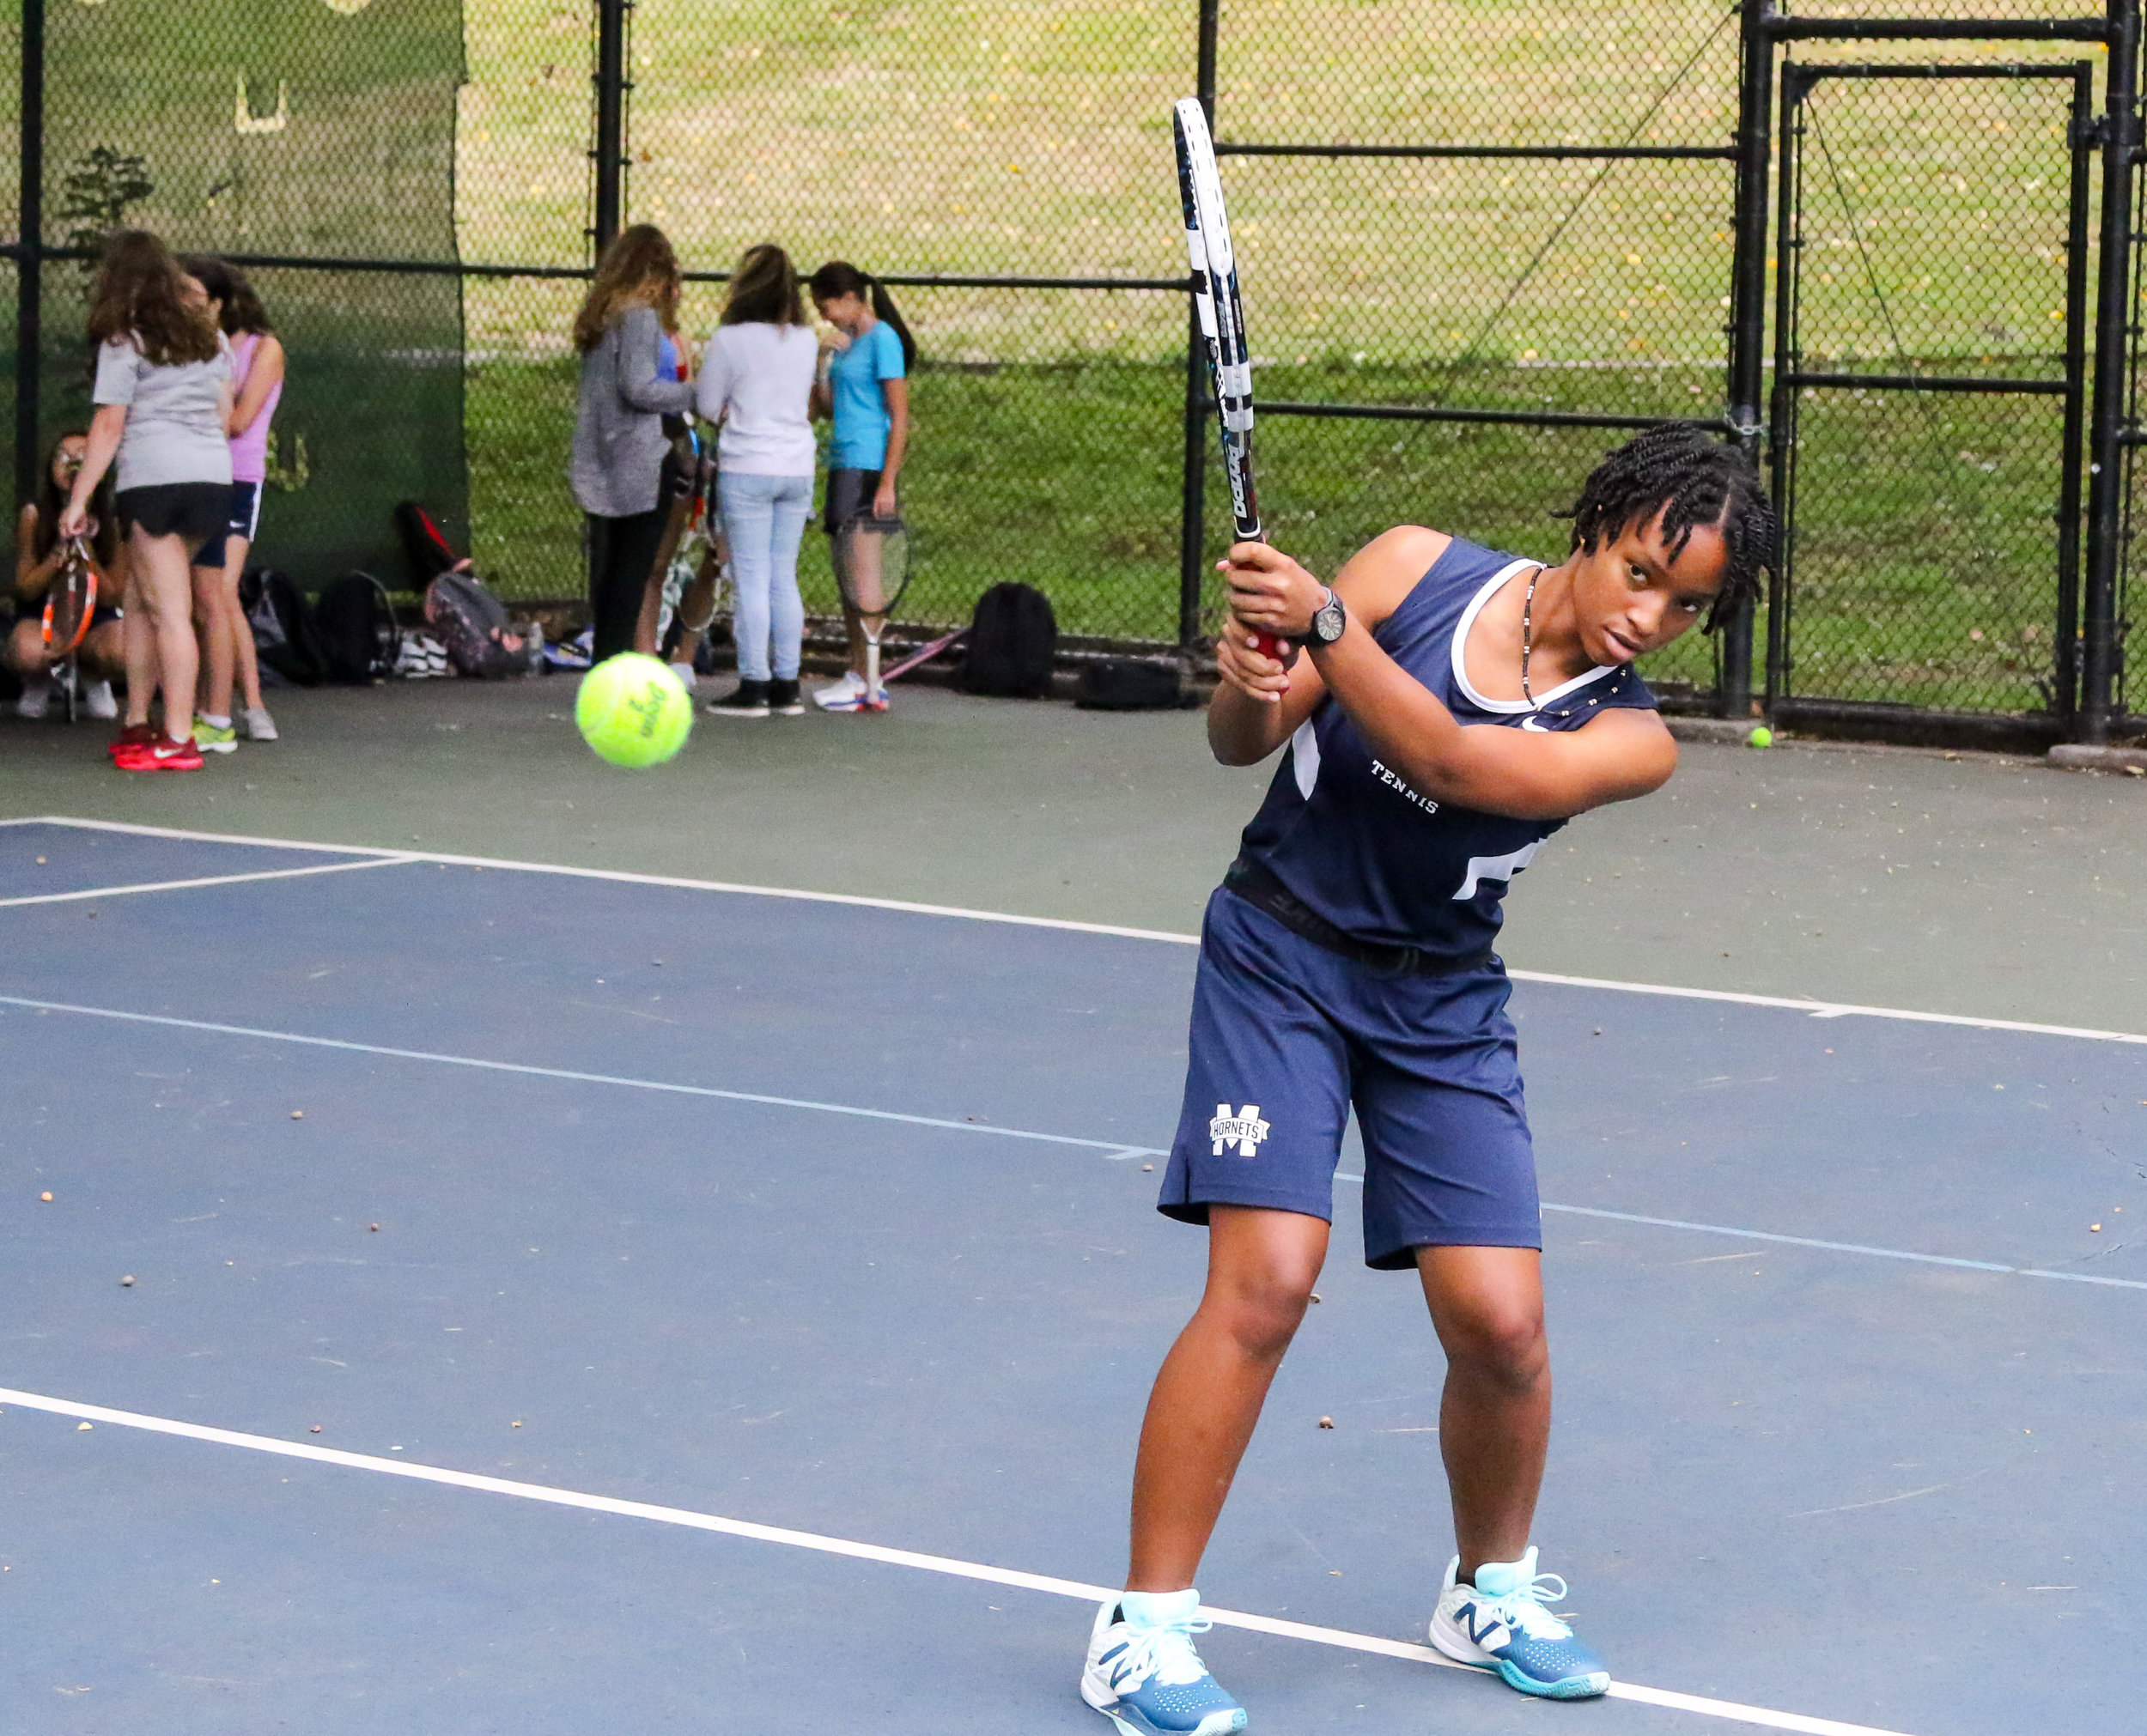 Captain Soleil Robertson '19 perfects her backhand at practice.  Photo Credit: Coninental Studios